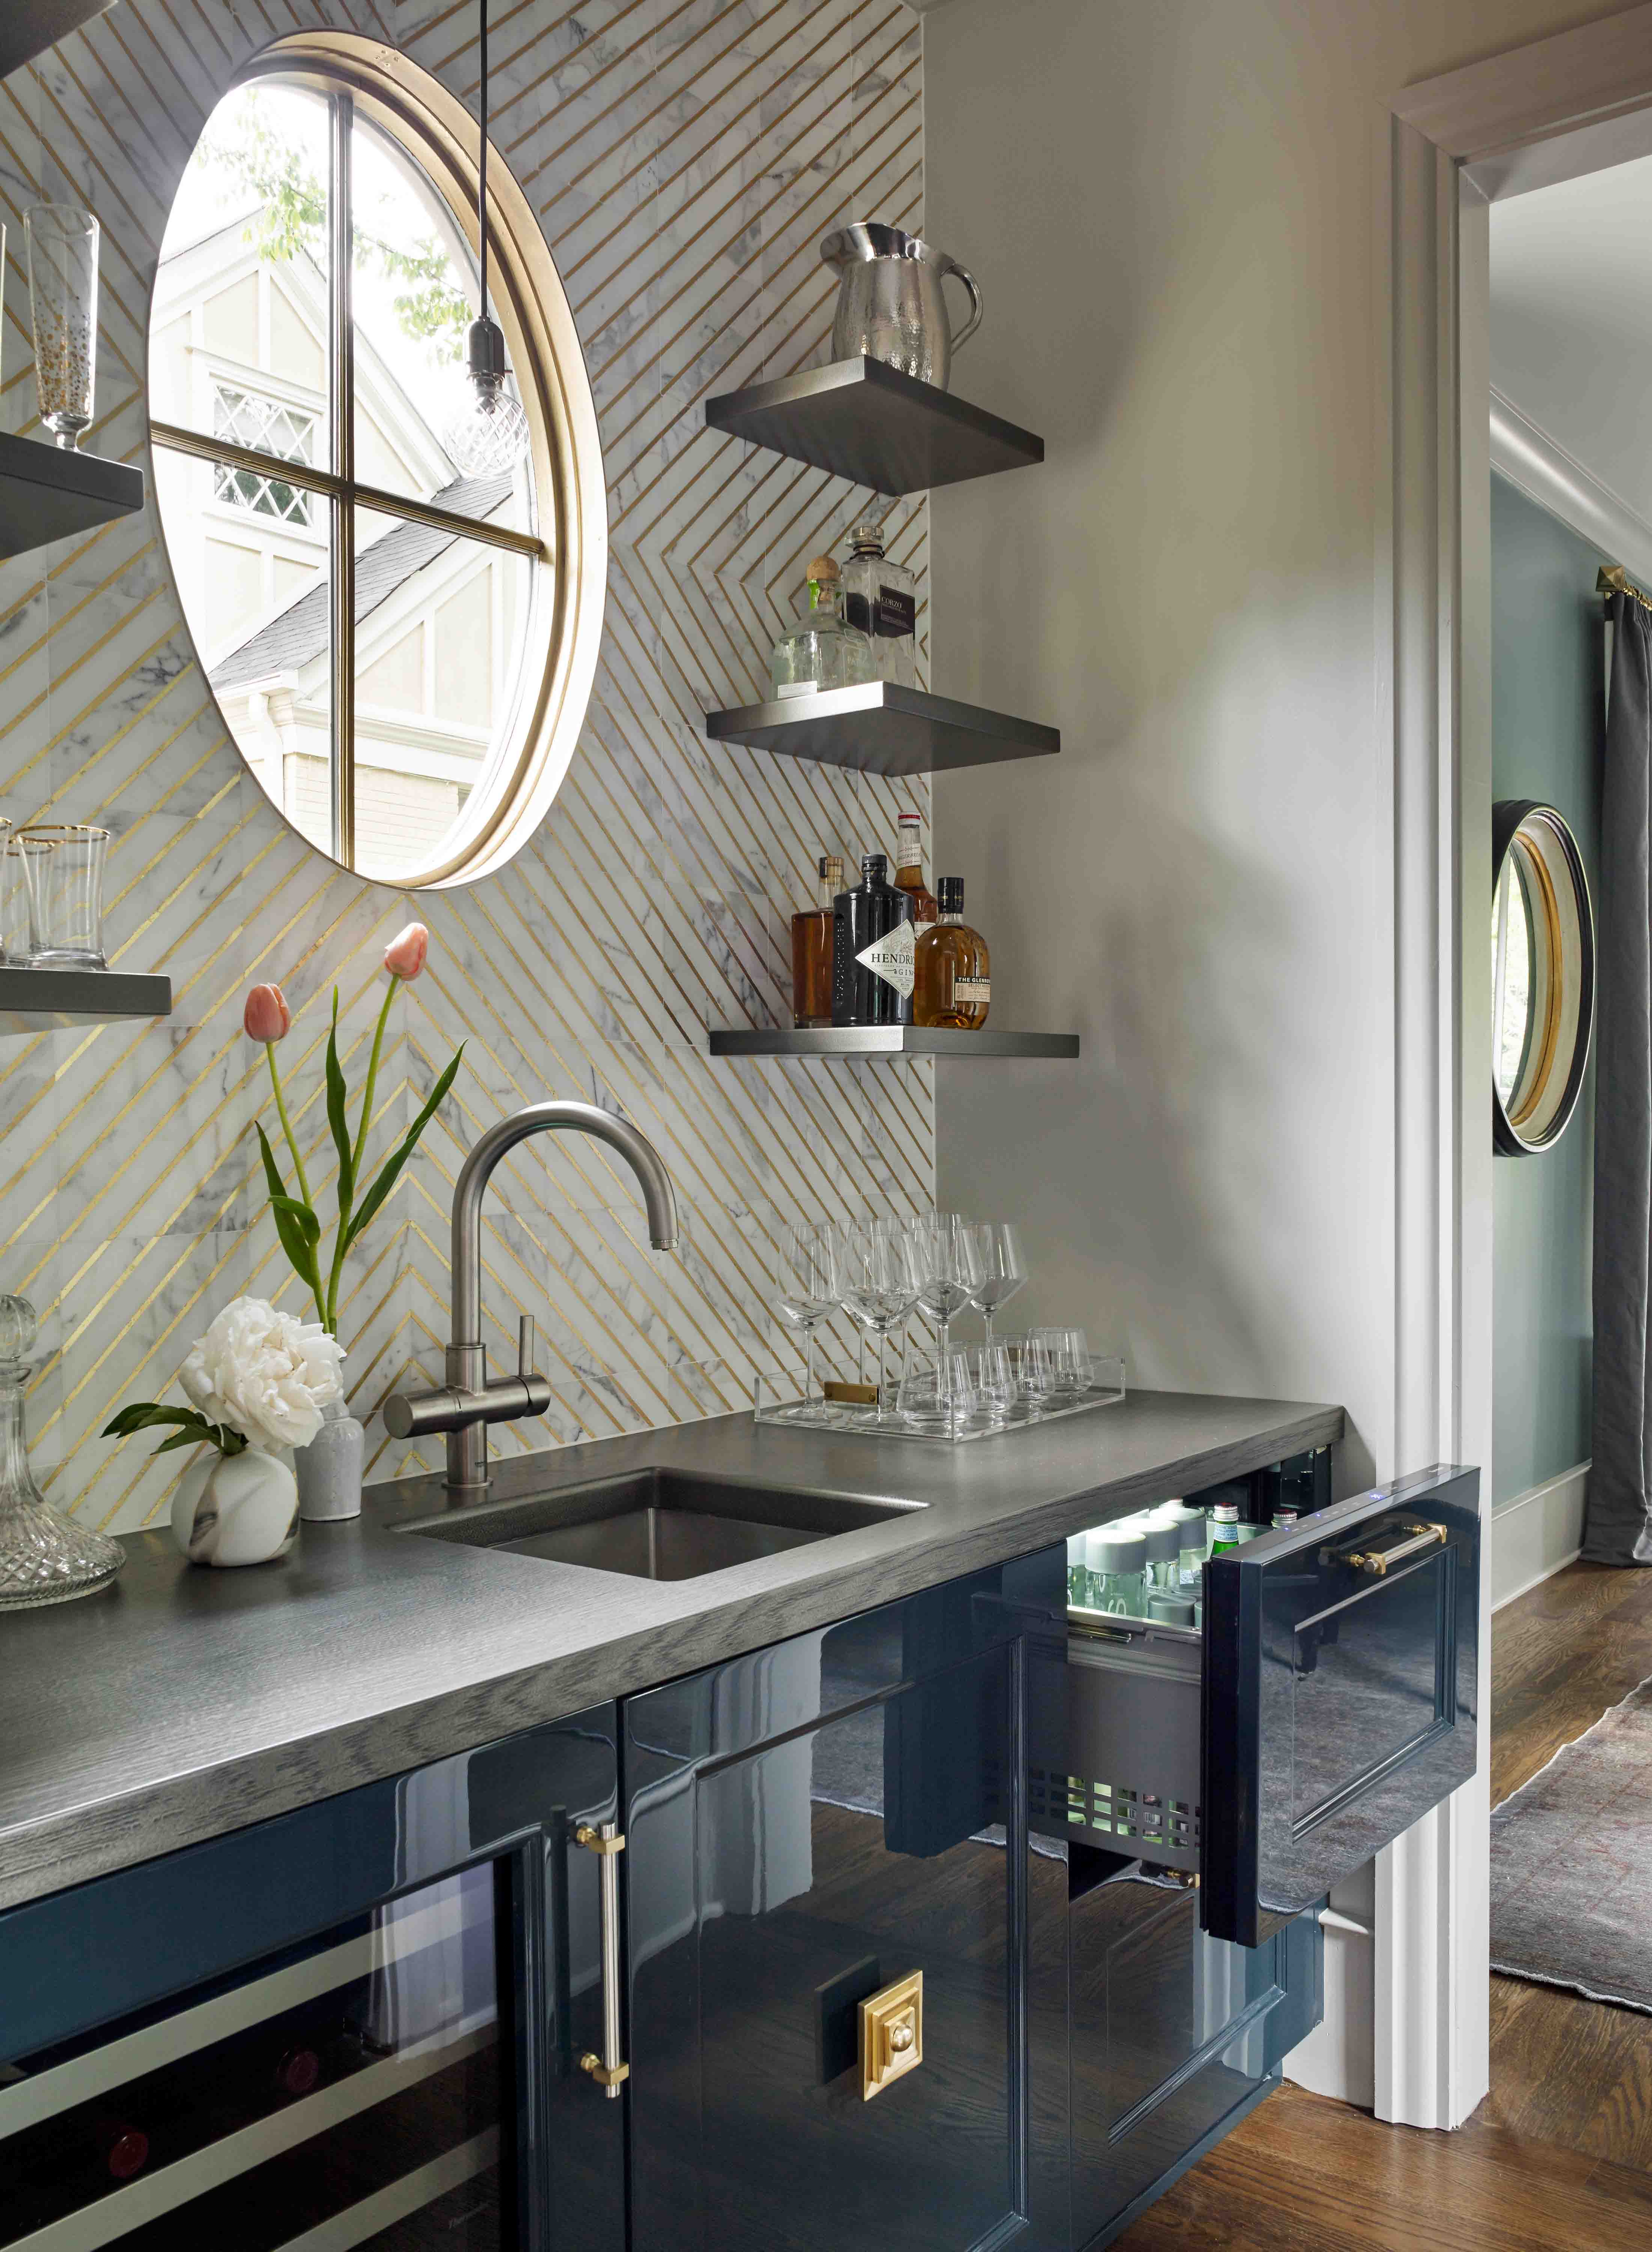 House Beautiful Kitchen of the Year Grothouse Anvil Metal Finished Wood Countertop designed by Matthew Quinn